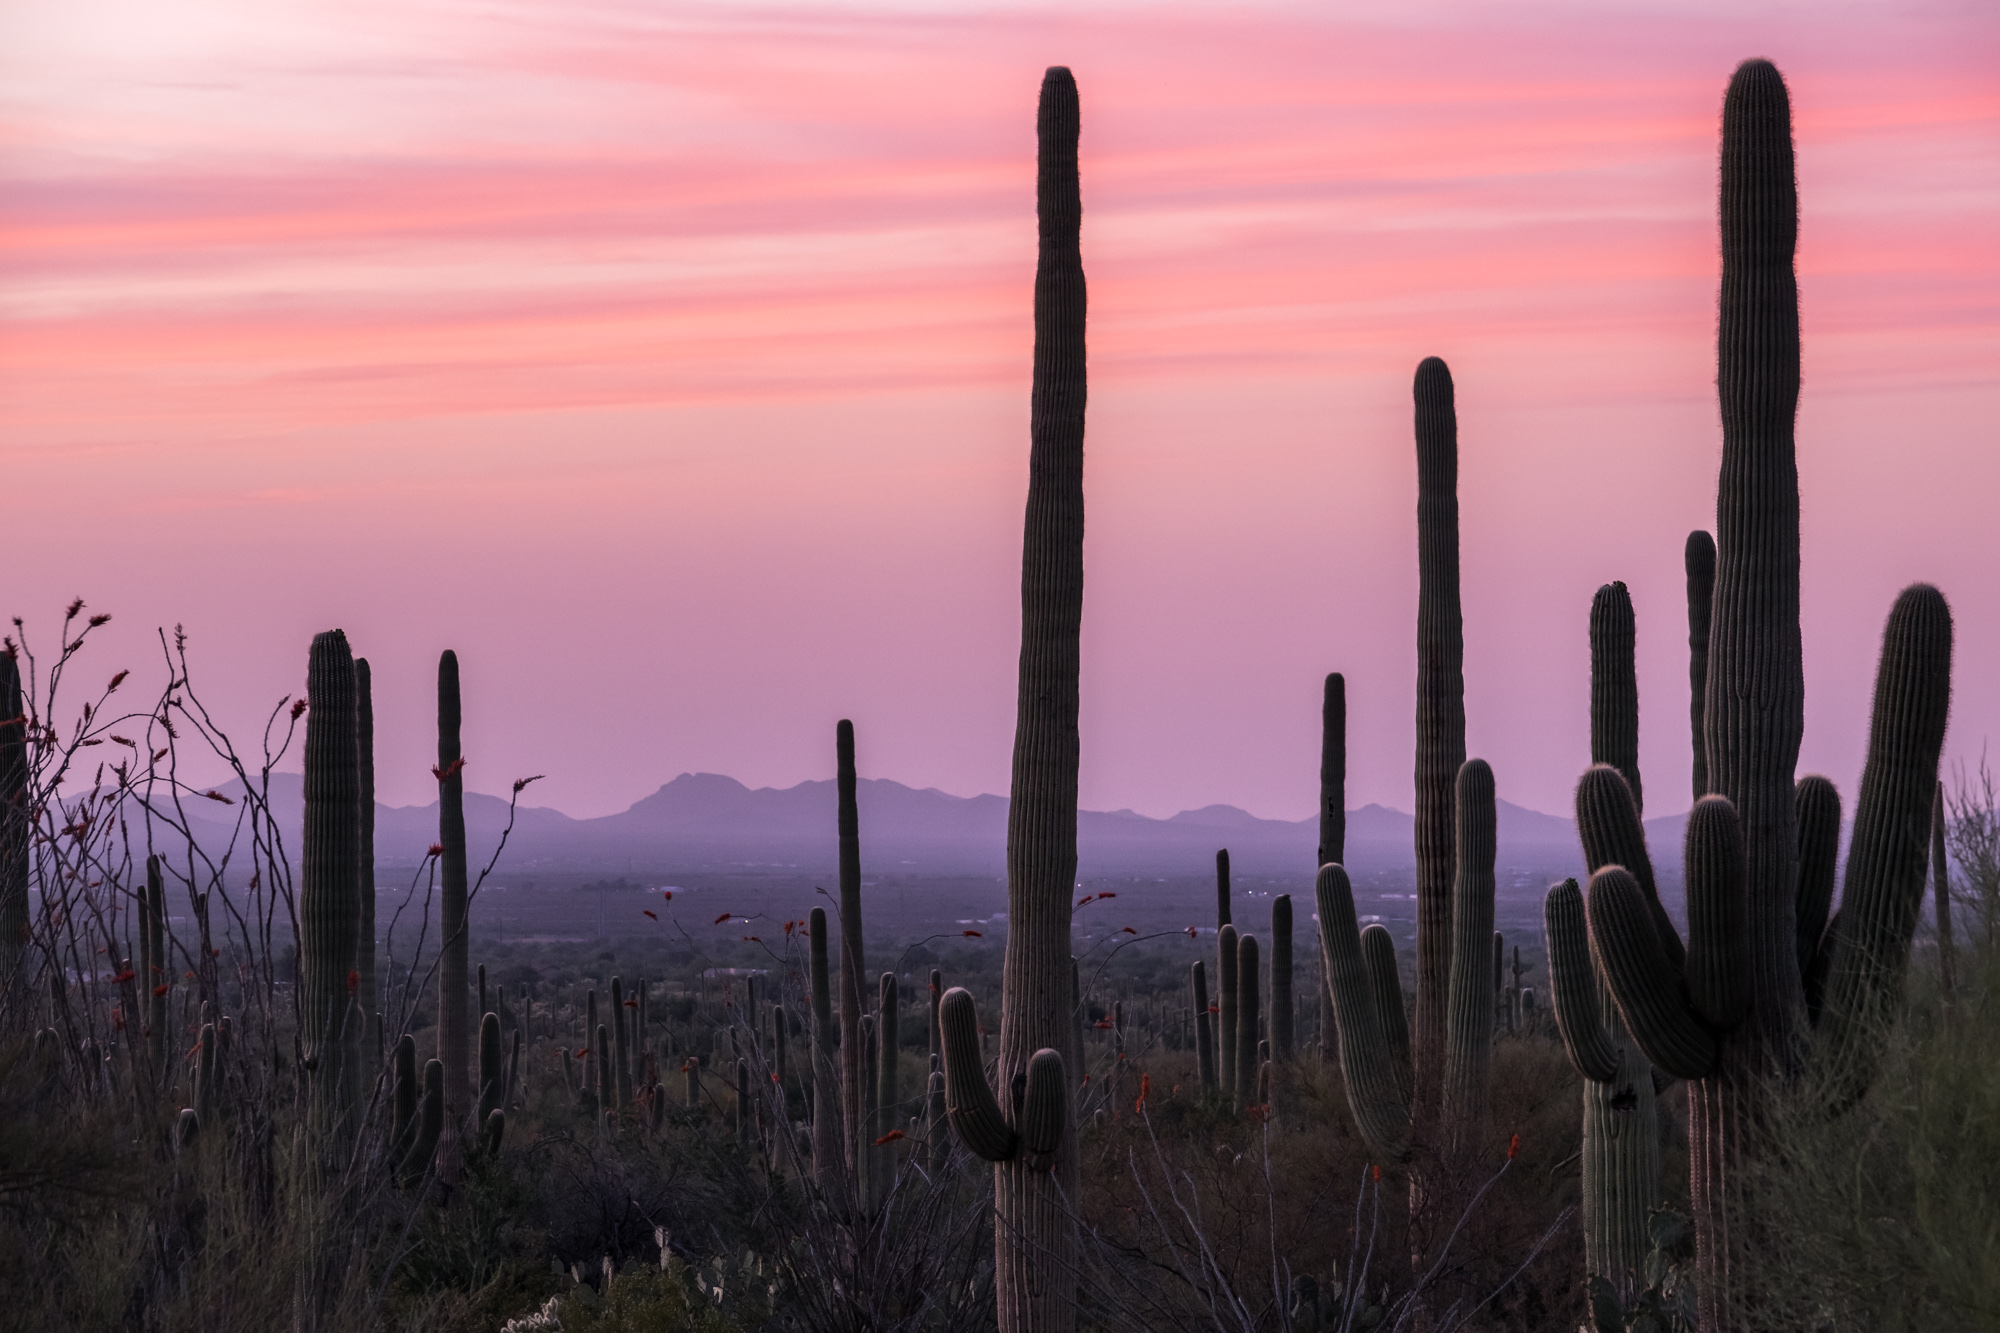 Beautiful pink skies and green cactus.